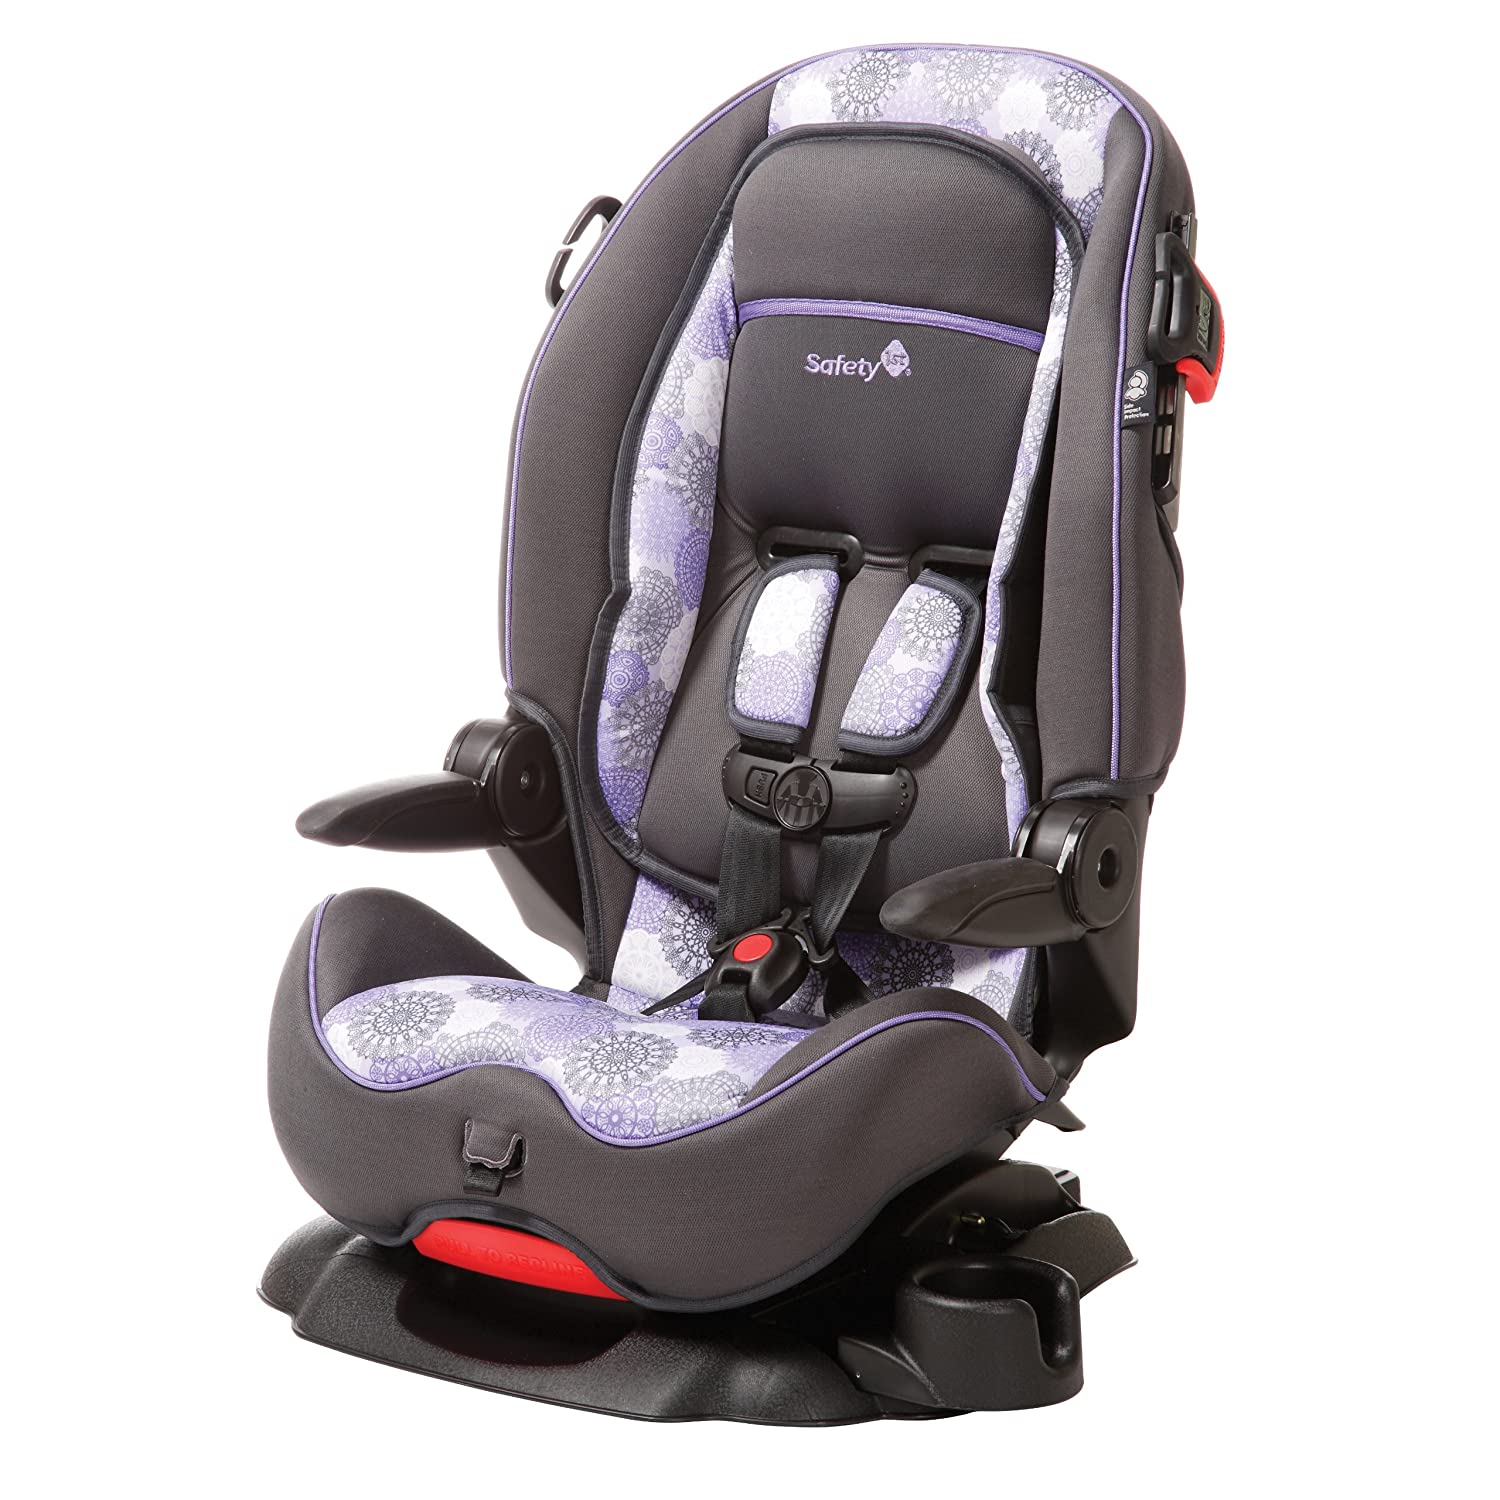 Amazon.com : Safety 1st Summit Car Seat, Victorian ...